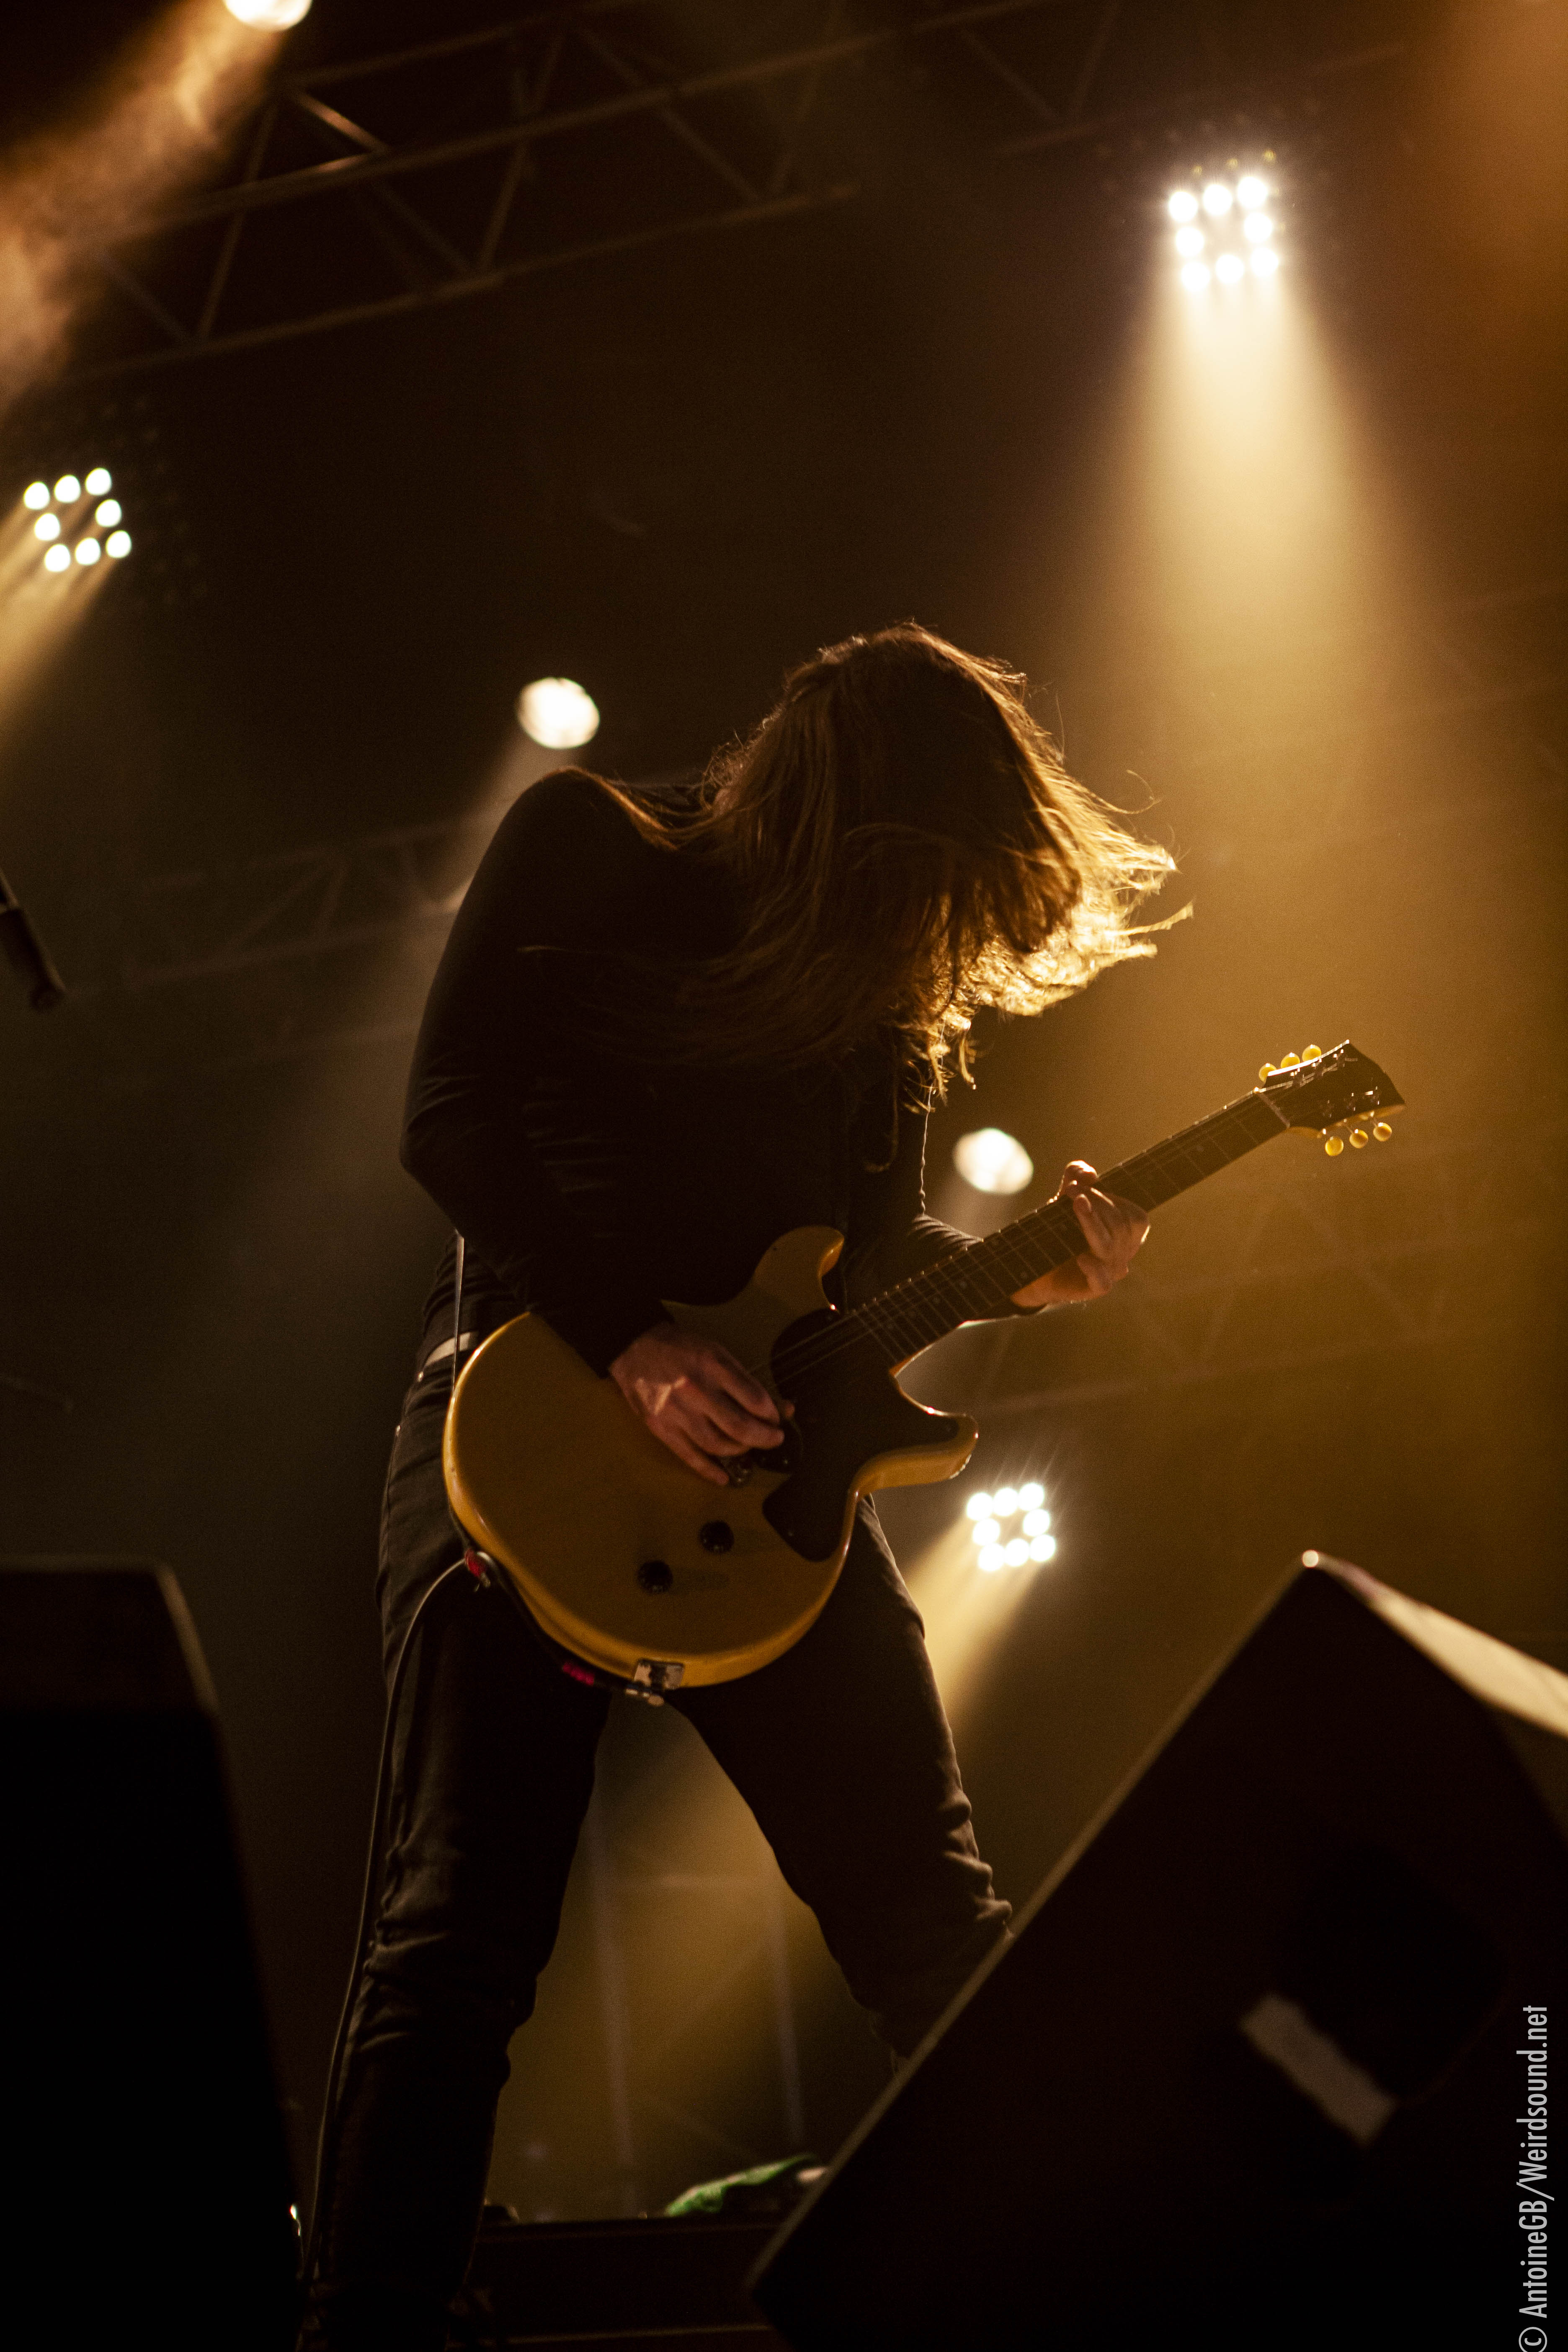 Uncle Acid And The Deadbeats, The Valley, Hellfest 2019, 21 juin